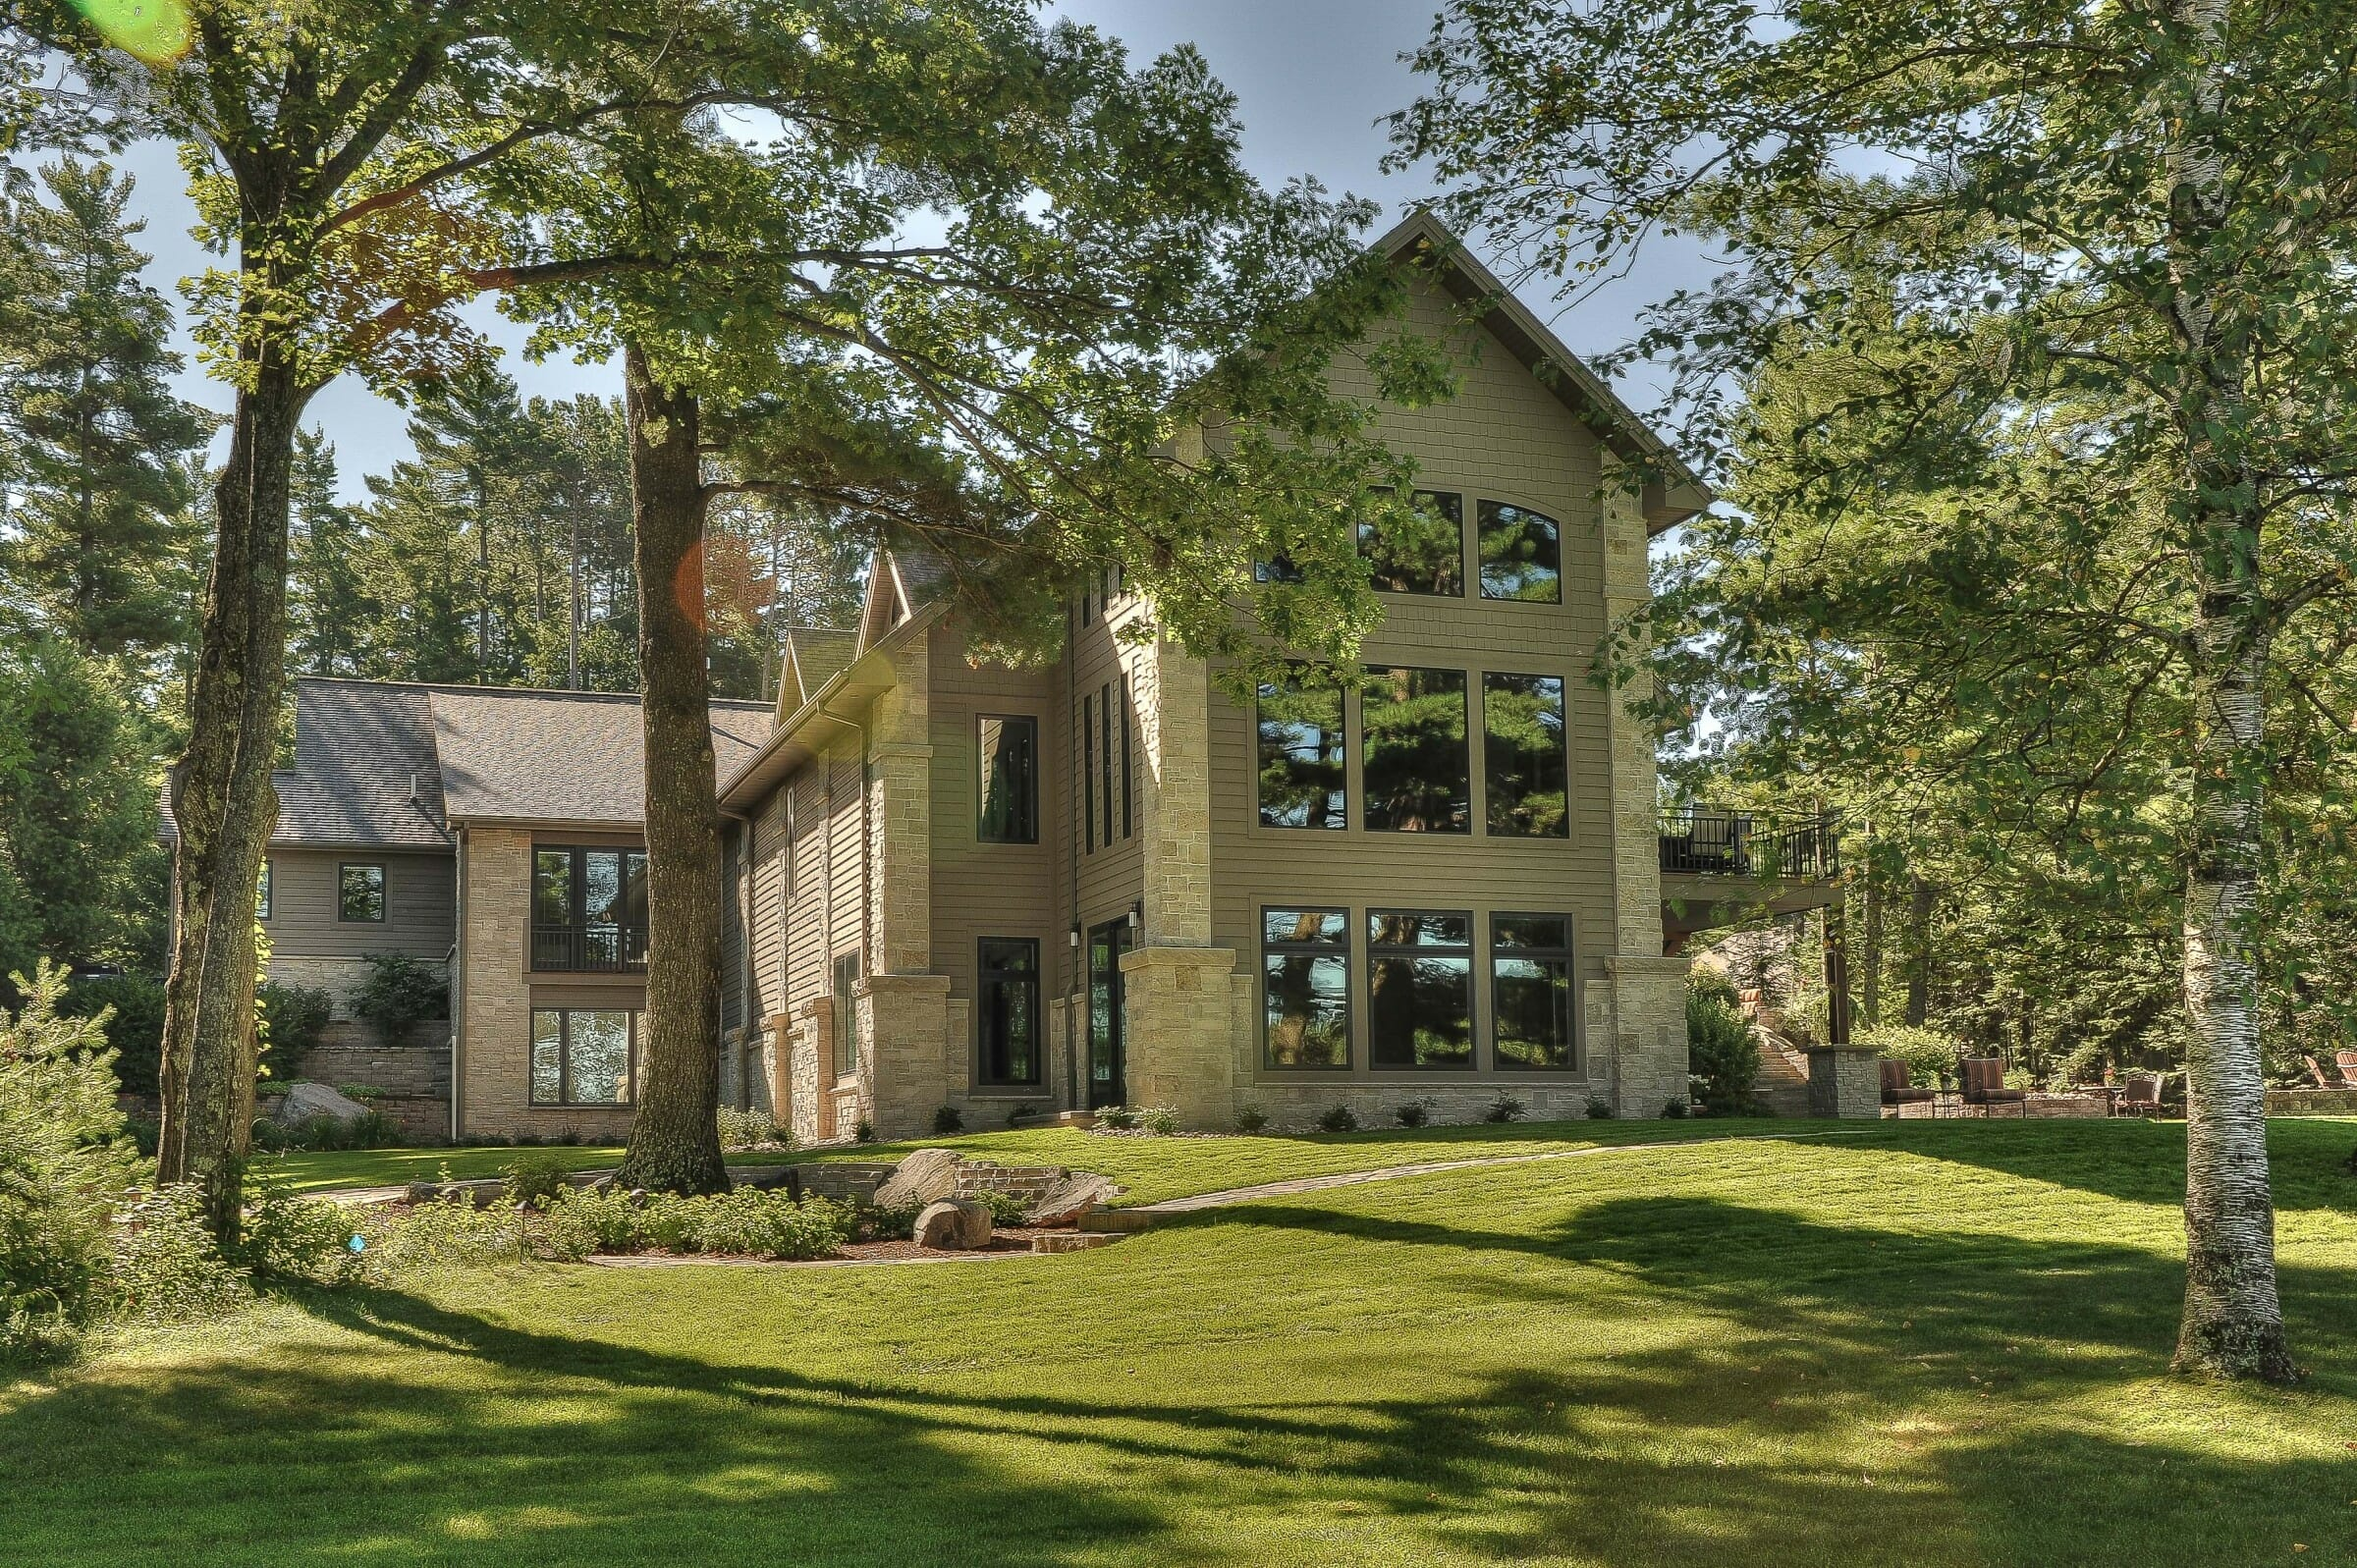 Exterior of the Minocqua Residence that features arched king trusses, cathedral ceilings and windows.